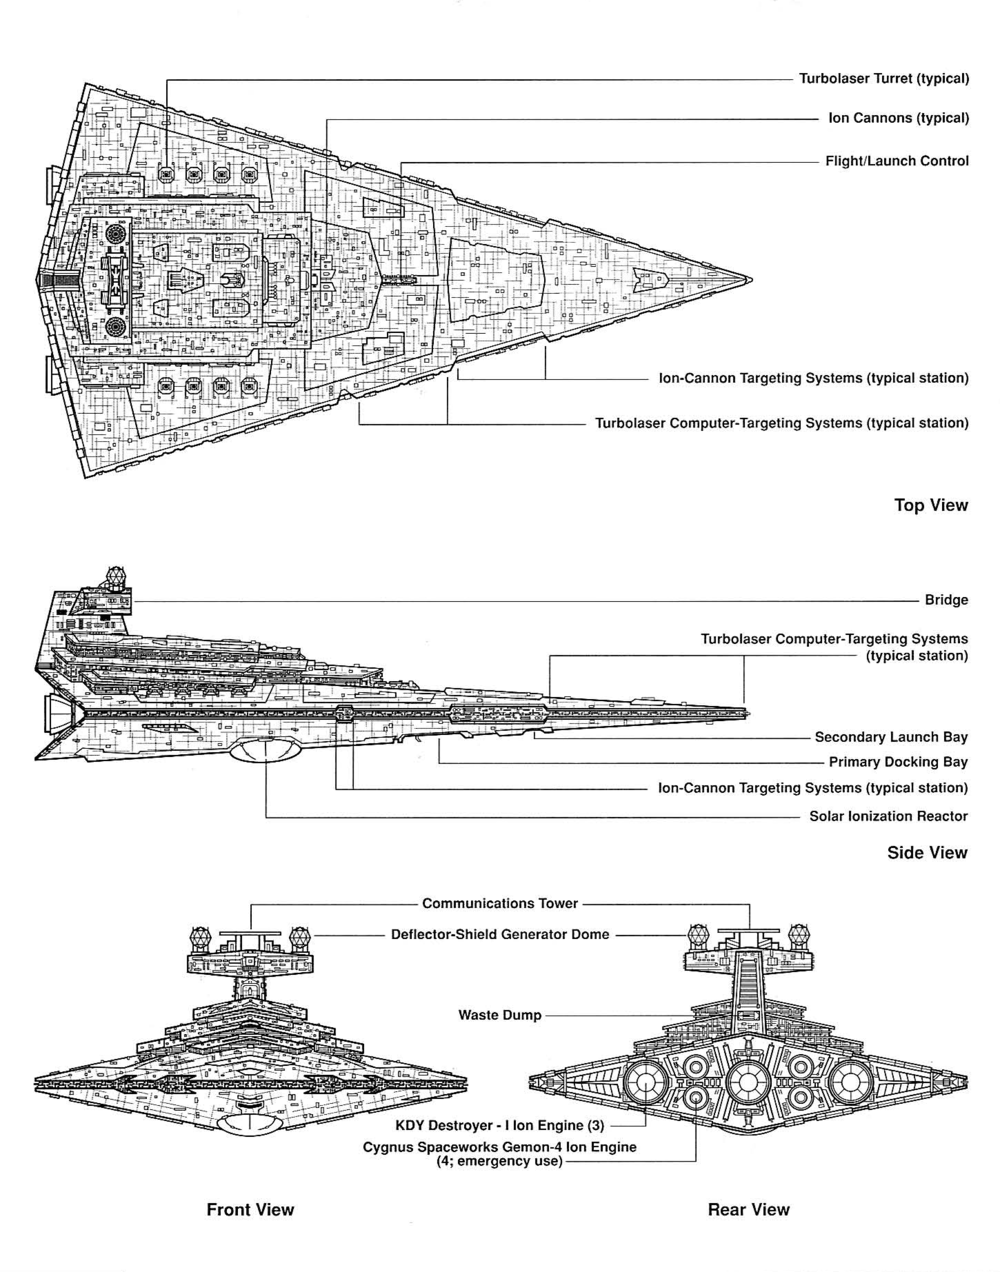 Technical Drawing Images In 2018 Star Wars Destroyers For More Photos Diagrams And Tutorials Of His Cool Origami War This Category Is Drawings Such As Schematics Blueprints